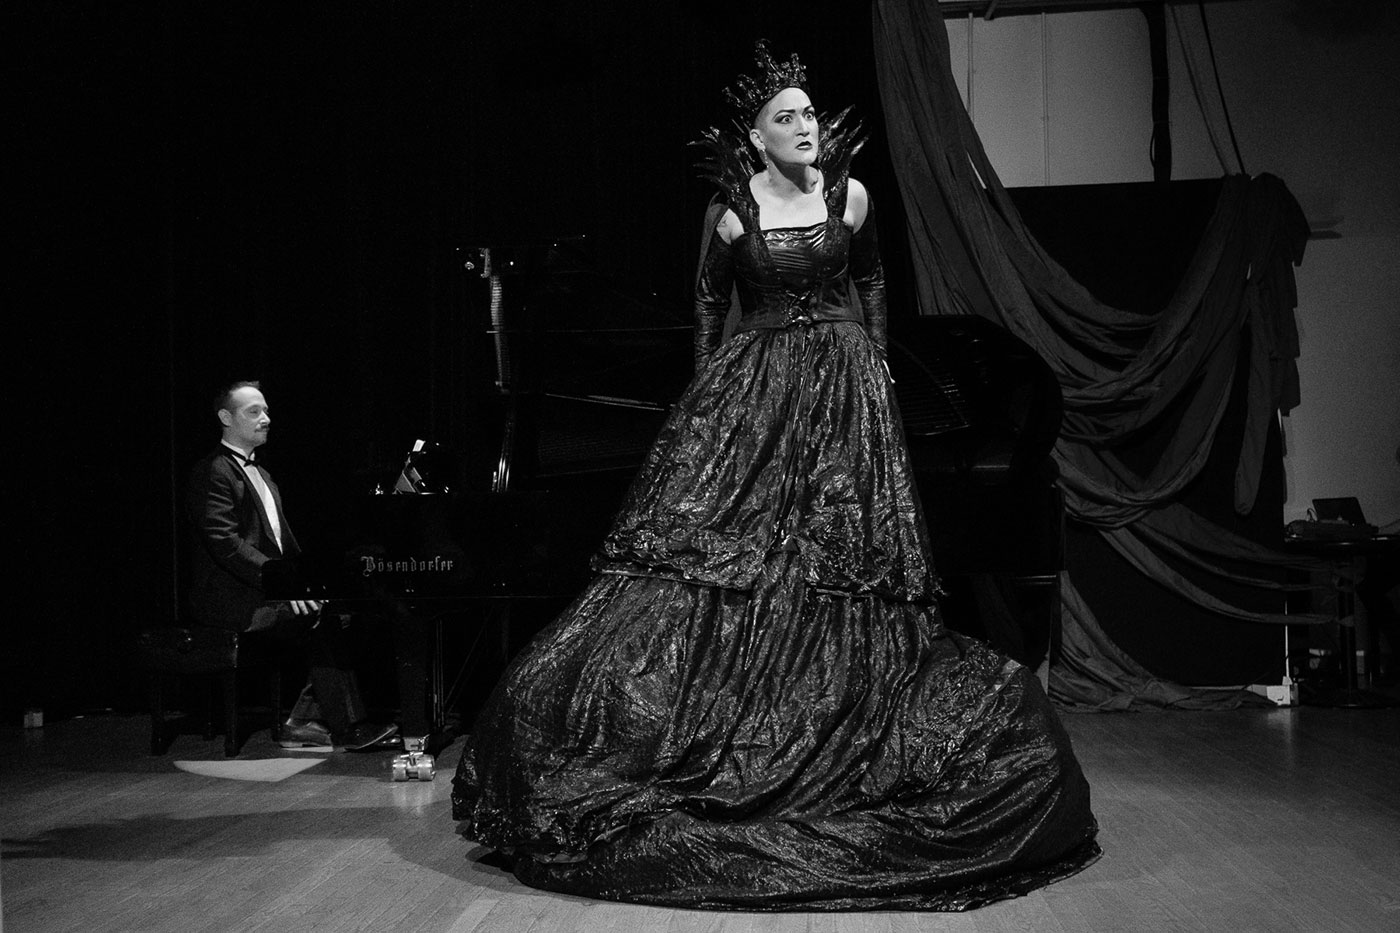 Opera singer Teiya Kasahara performs in Amplified Opera's debut concert series Amplify